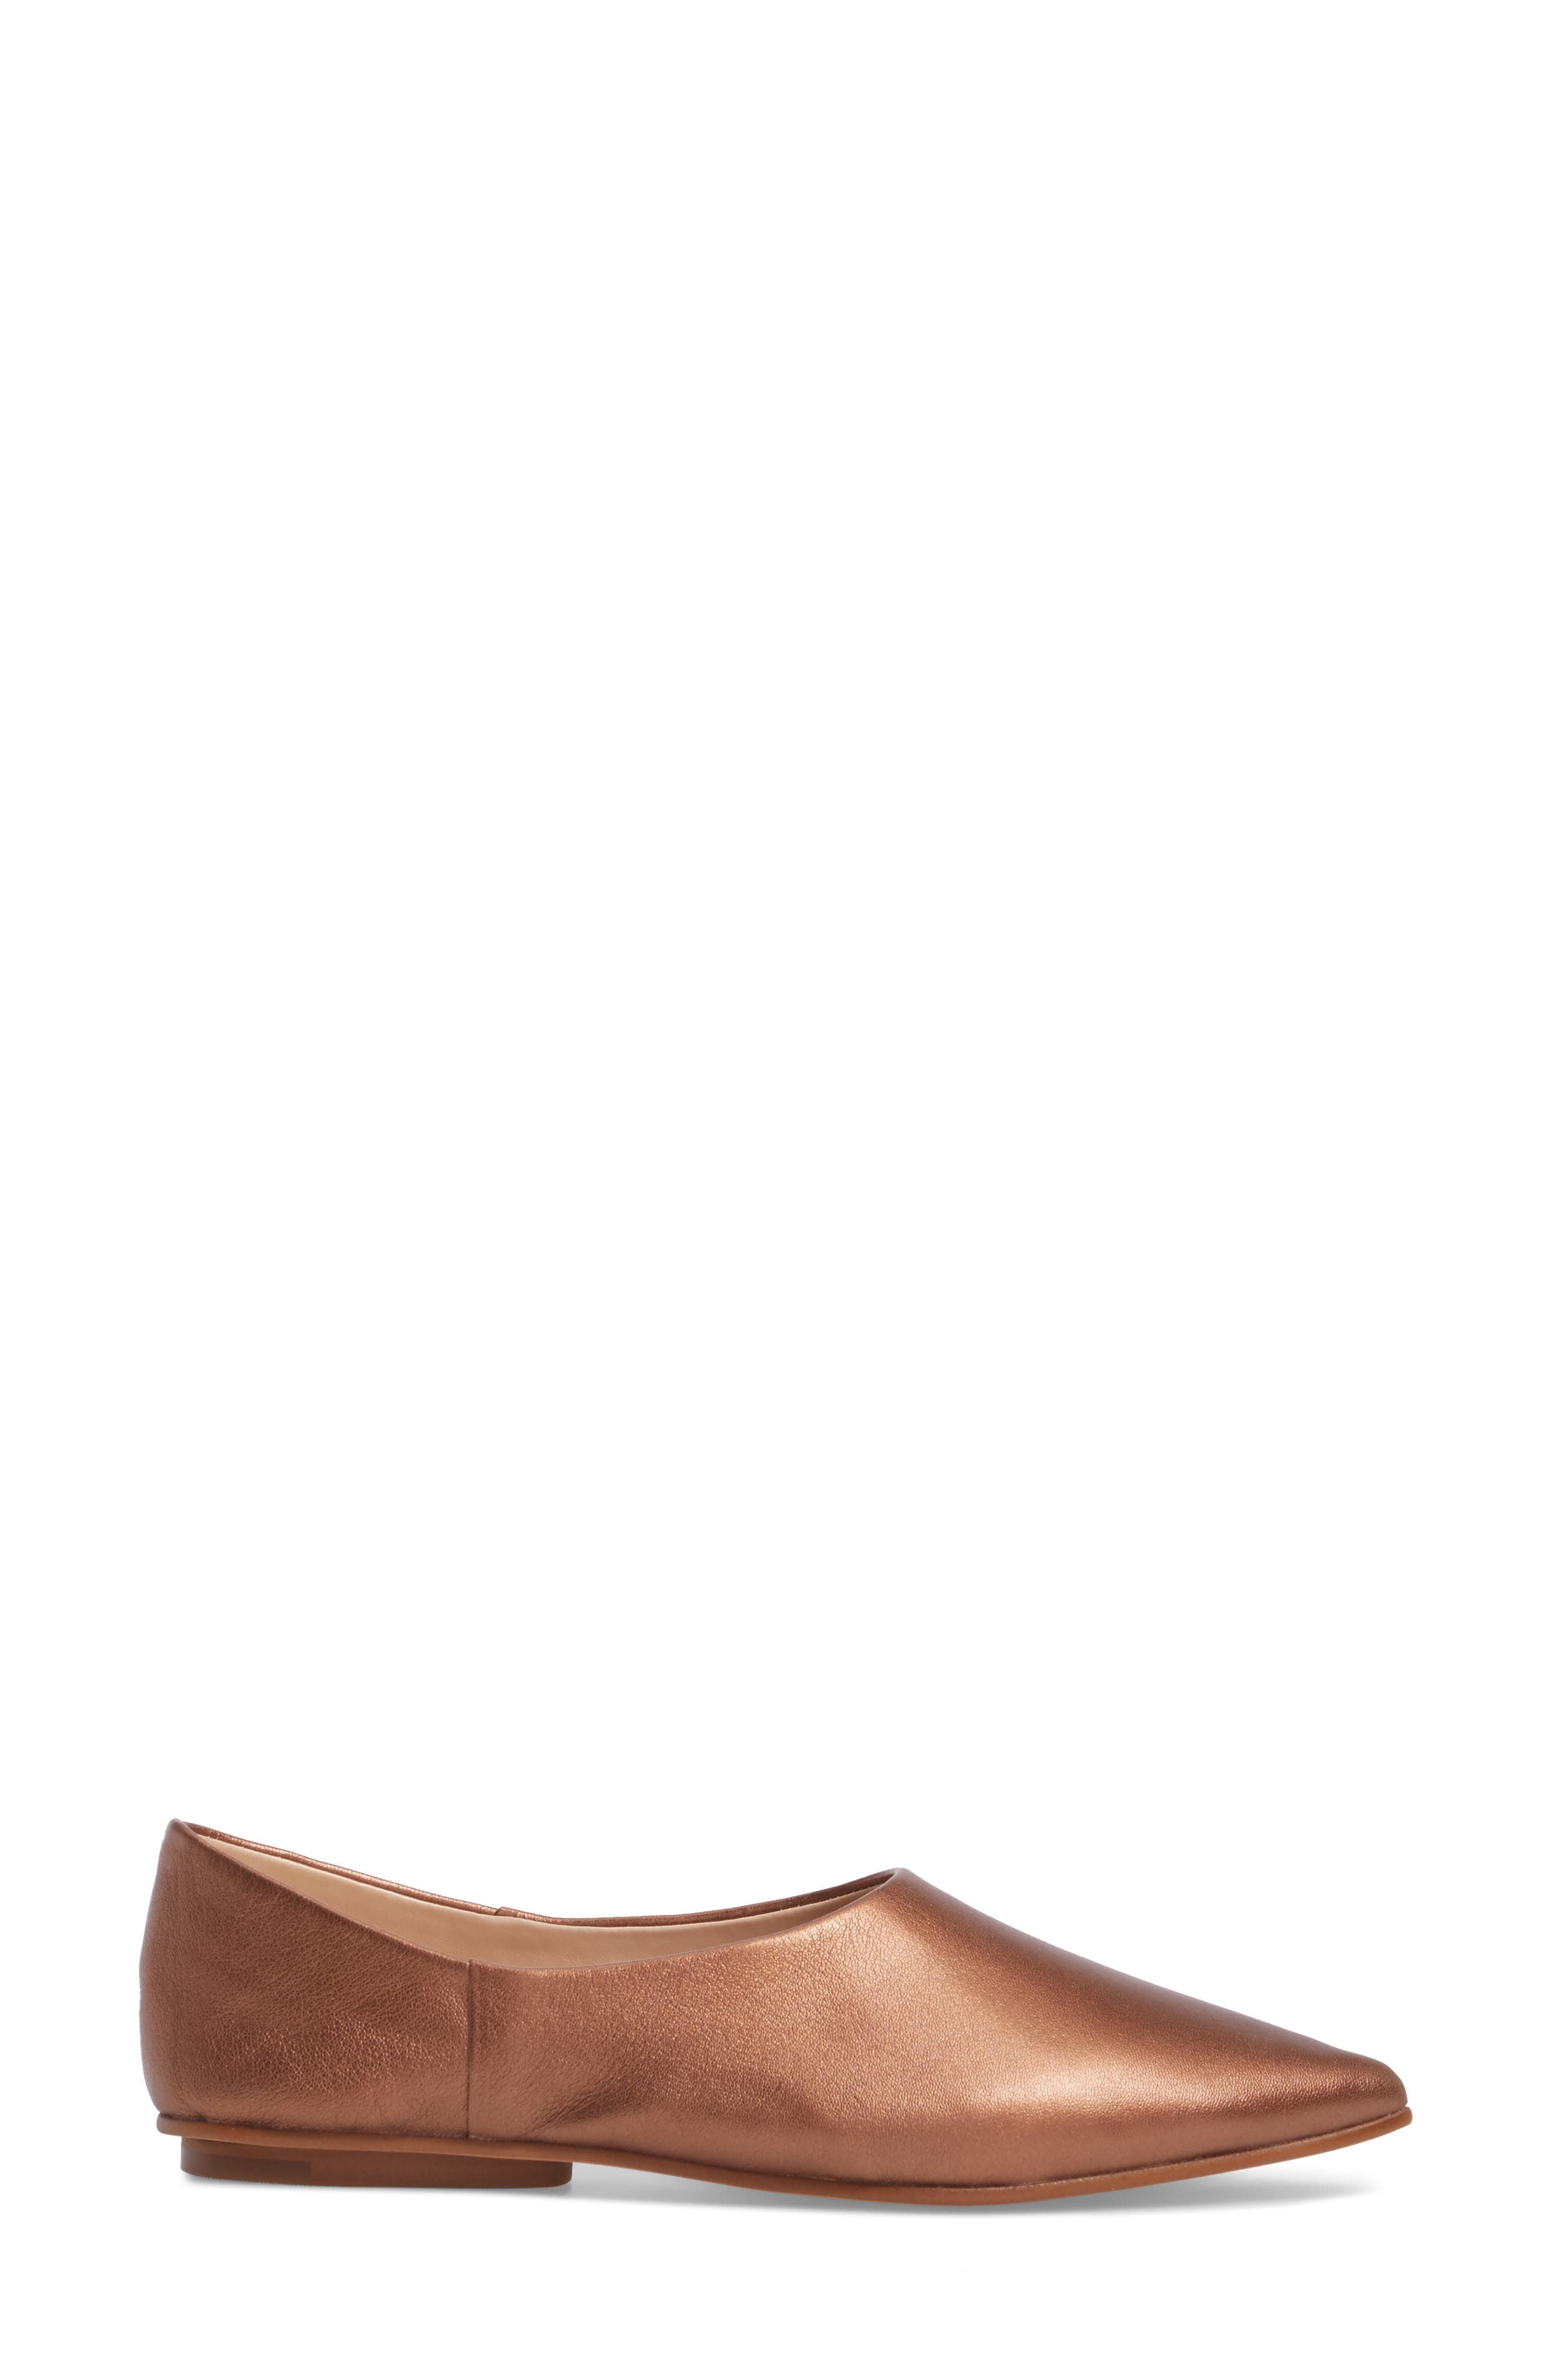 Stanta Pointy Toe Flat,                             Alternate thumbnail 3, color,                             Penny Leather